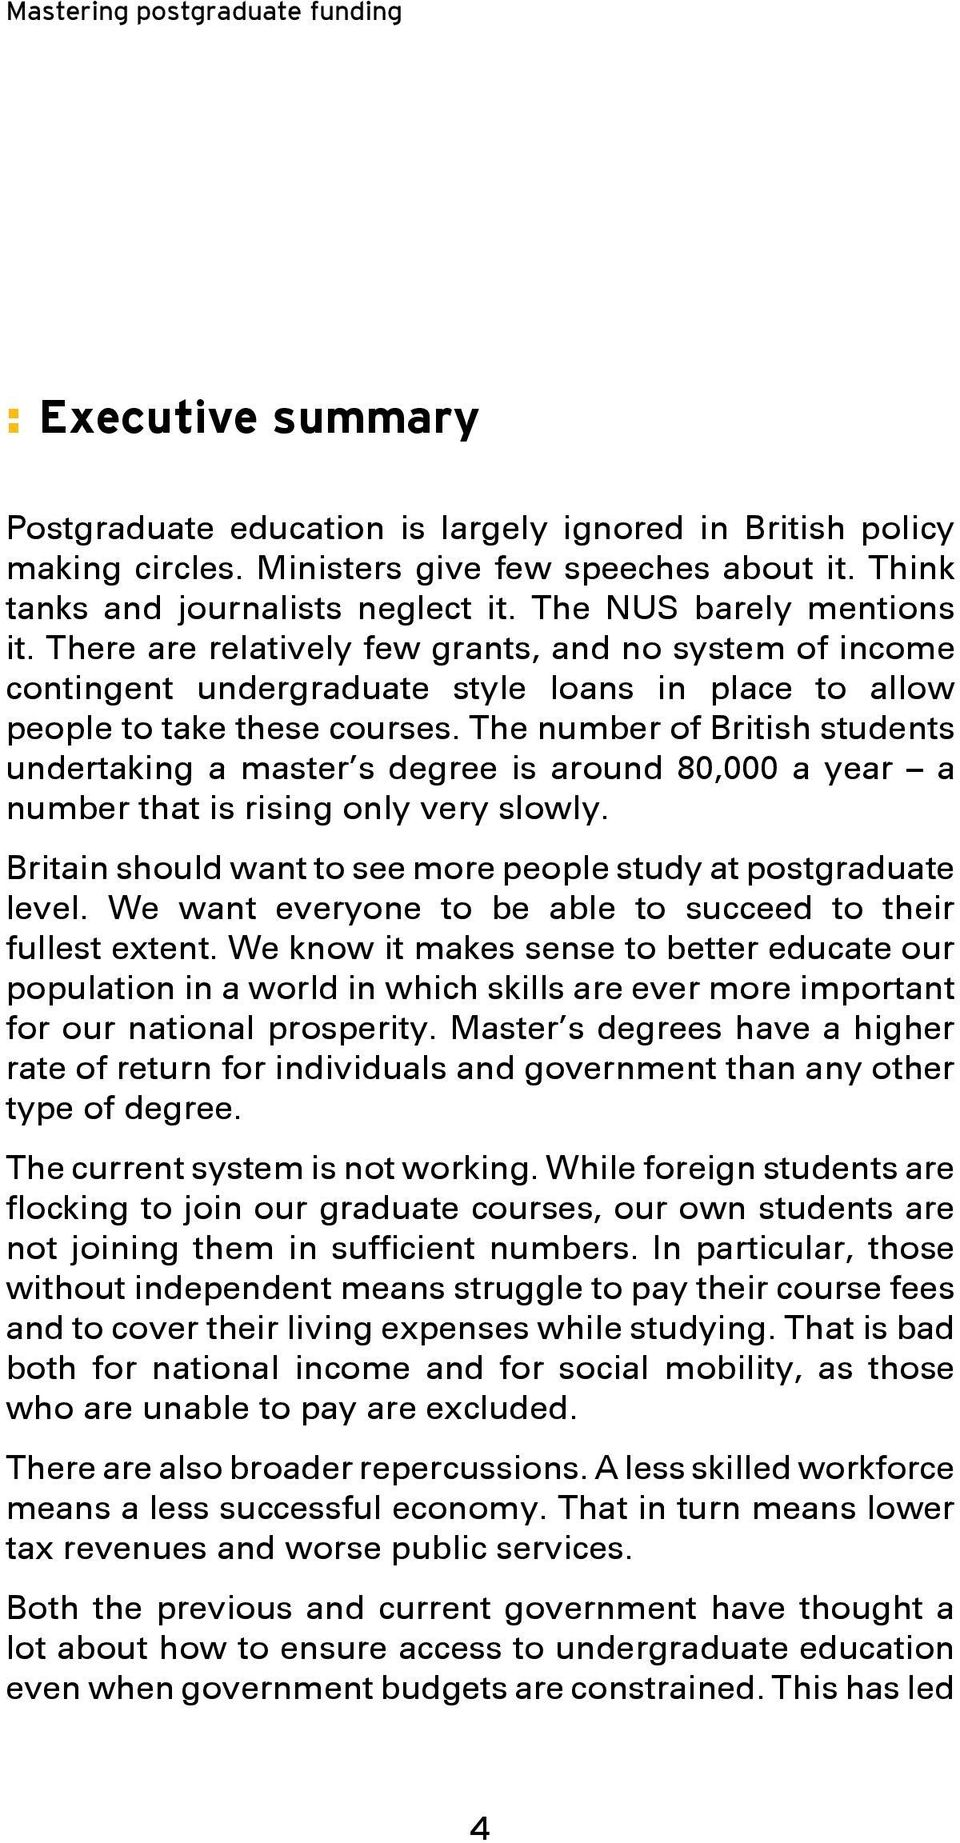 The number of British students undertaking a master s degree is around 80,000 a year a number that is rising only very slowly. Britain should want to see more people study at postgraduate level.